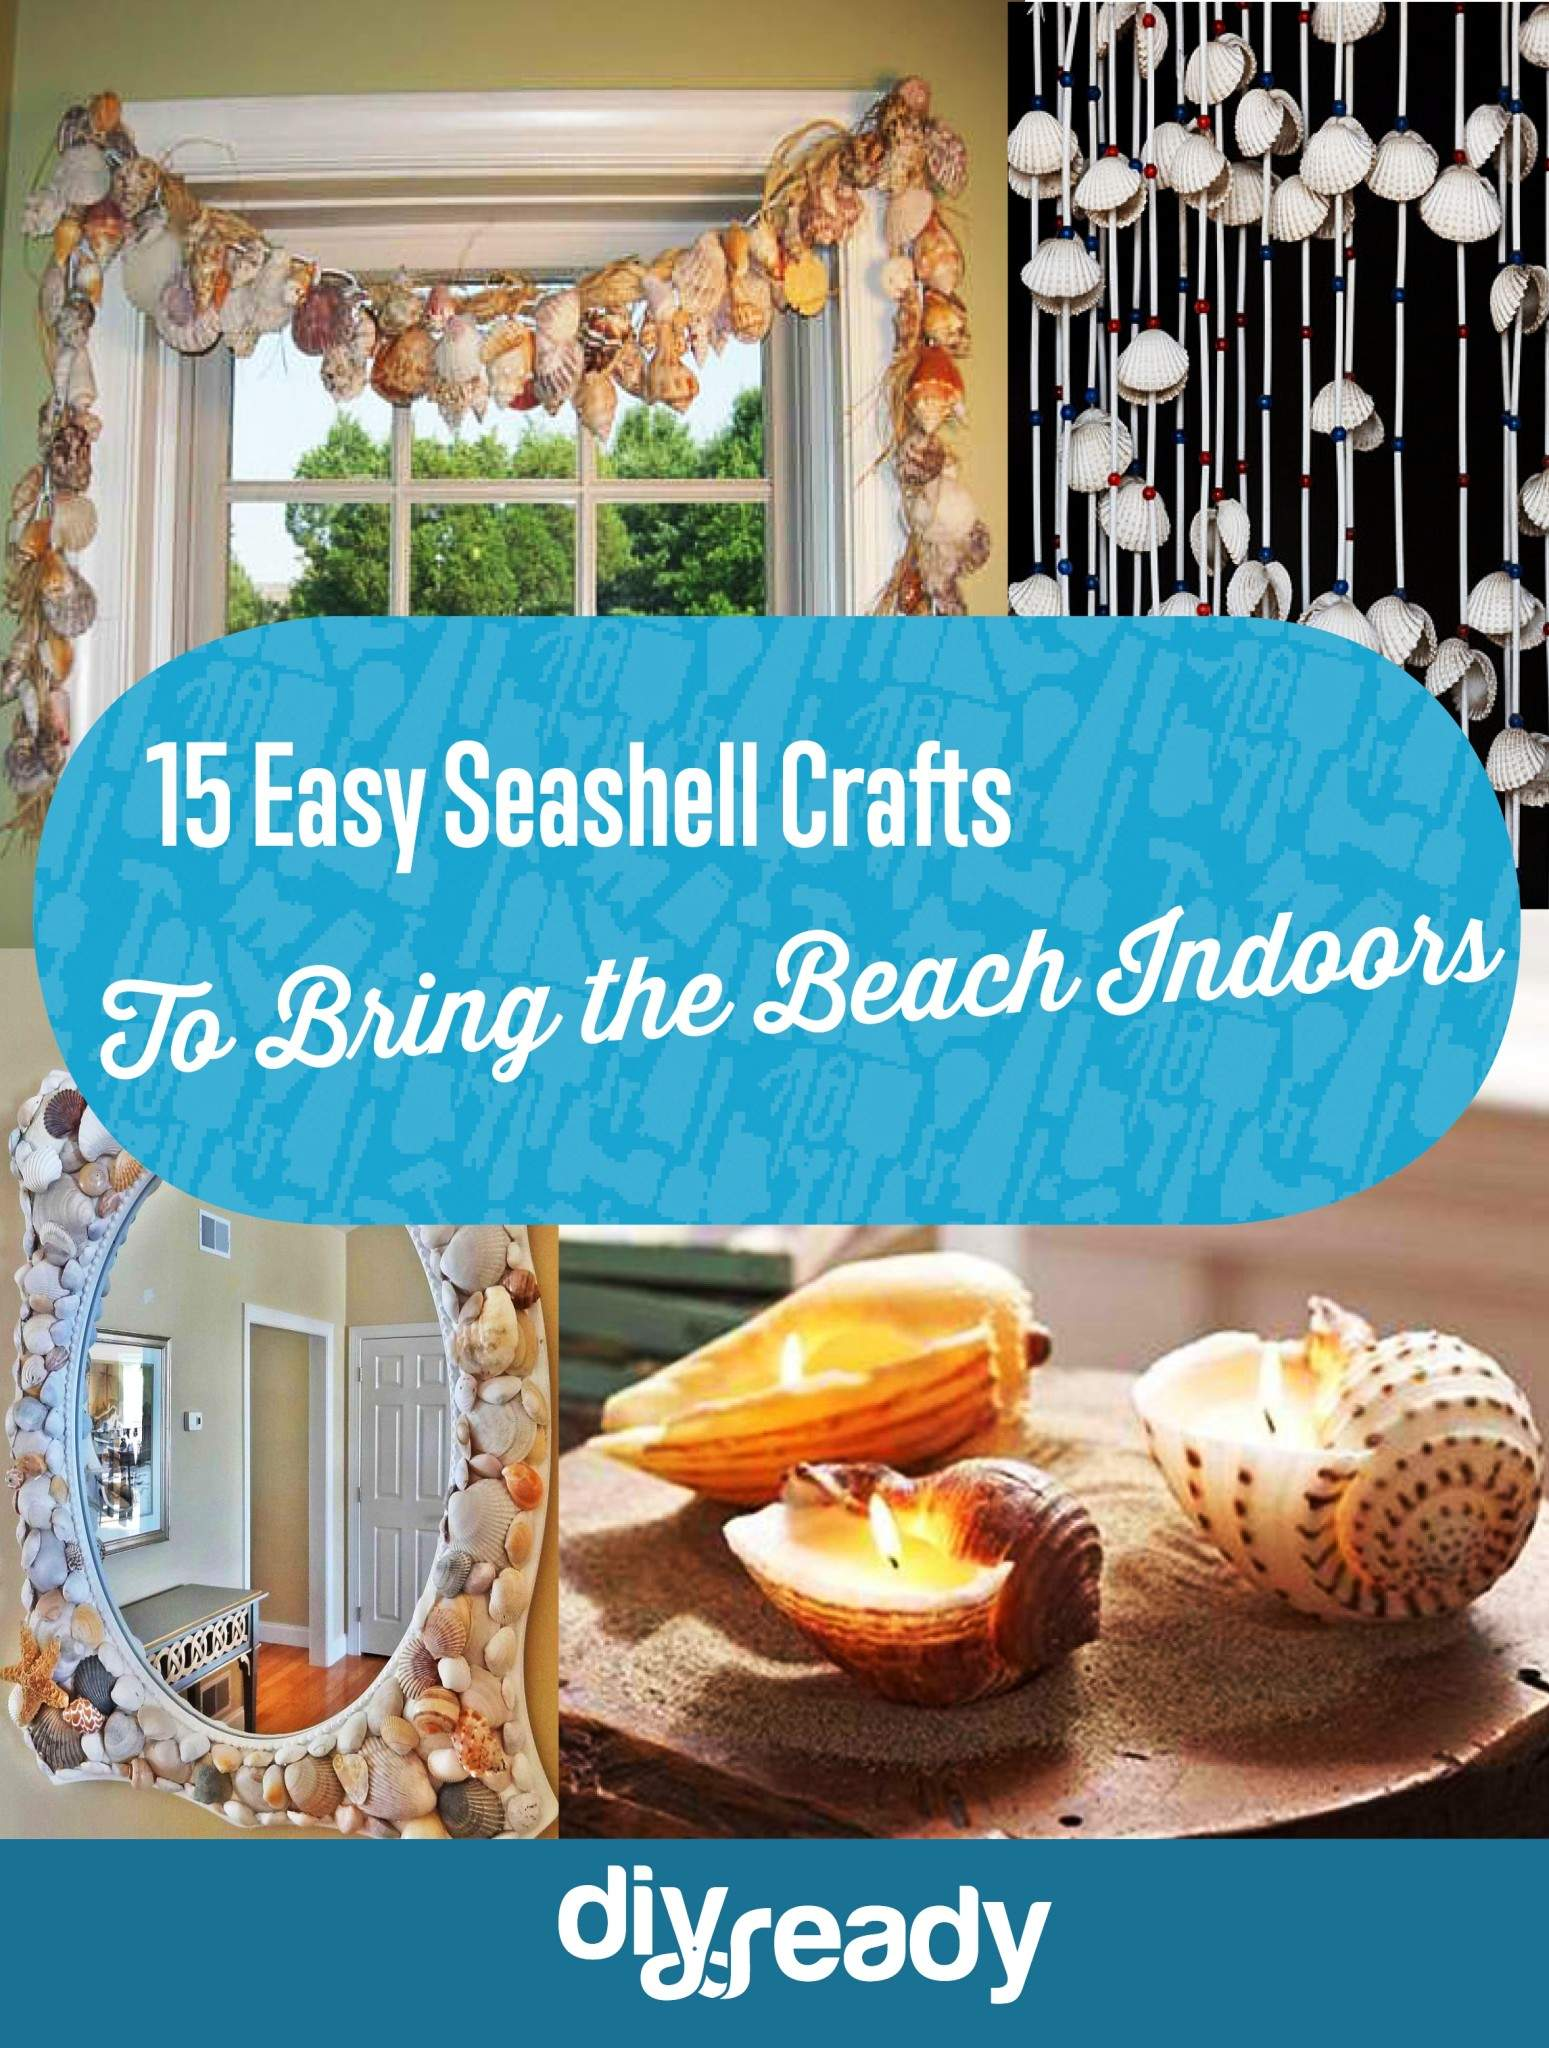 15 Easy Seashell Crafts To Bring The Beach Indoors